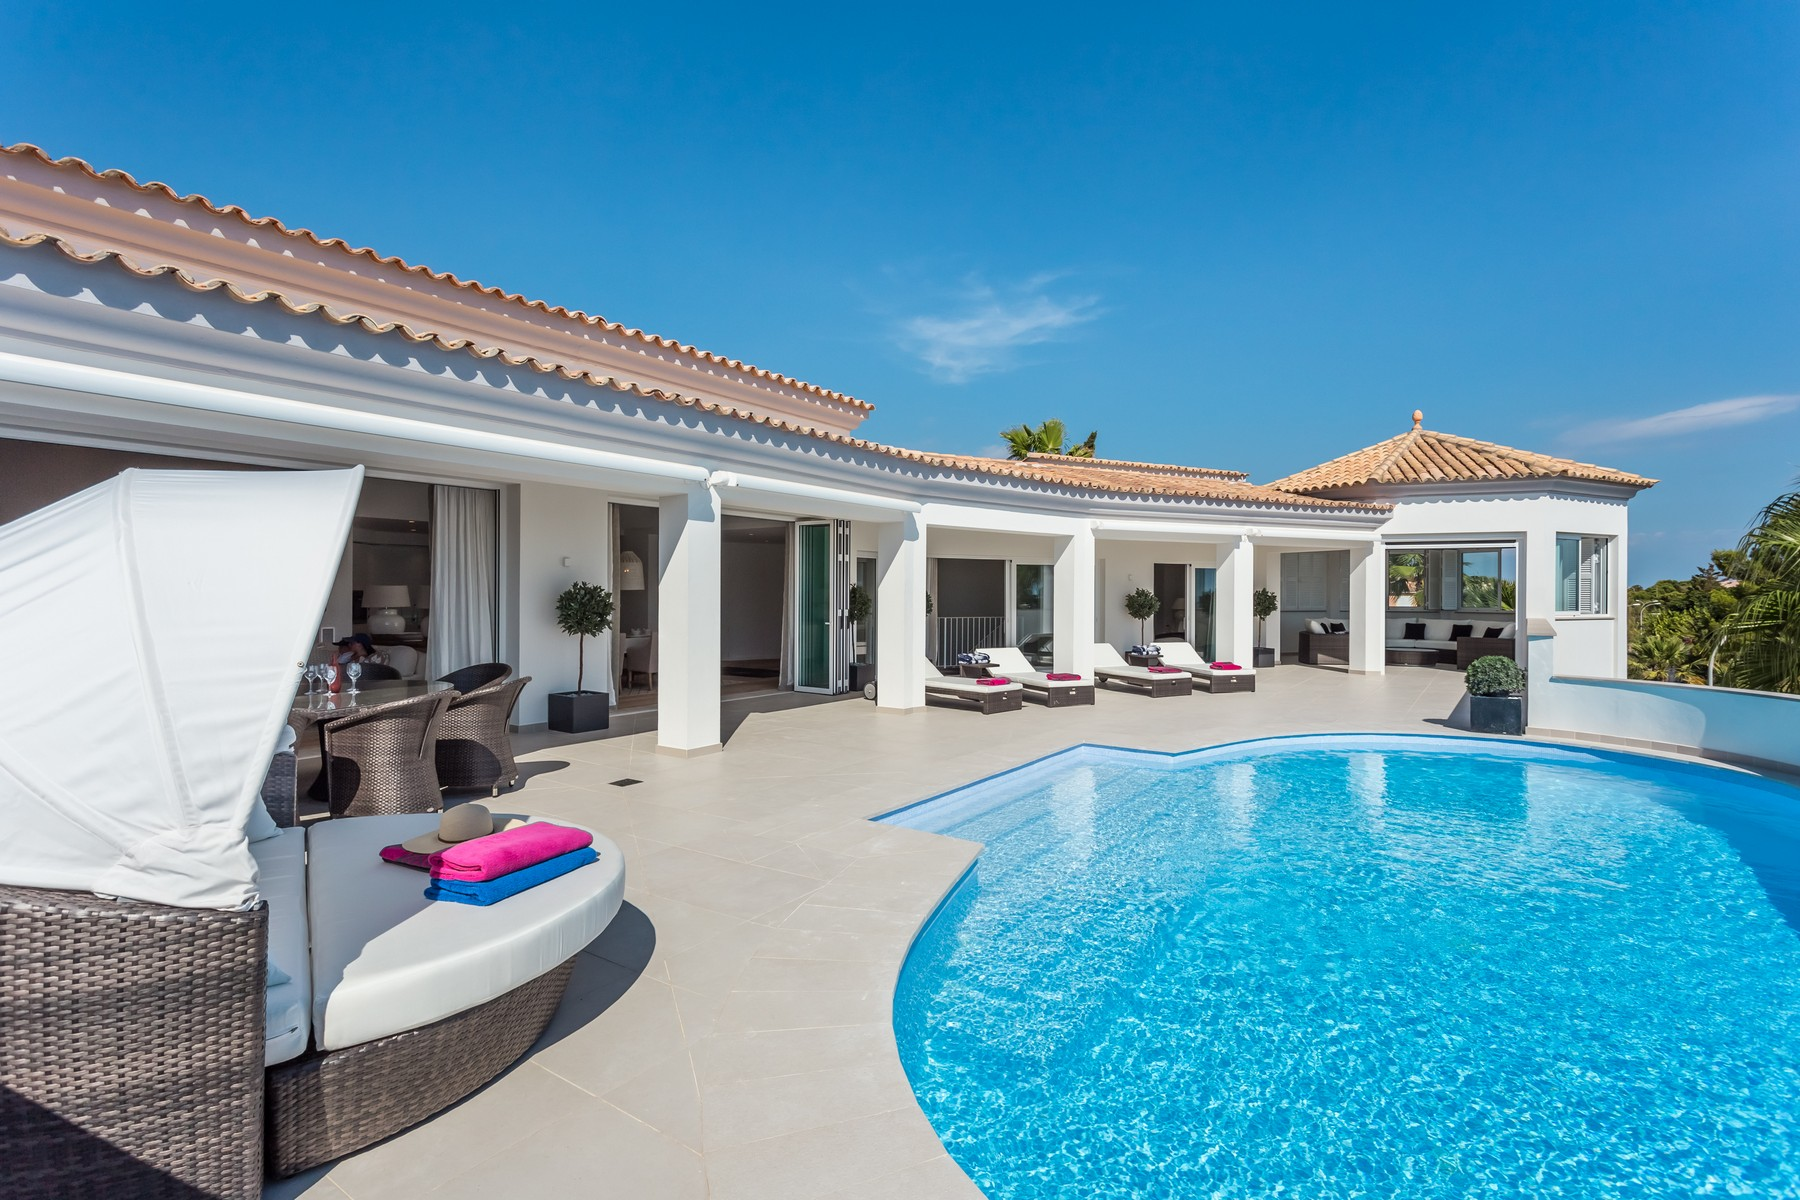 Single Family Home for Sale at Luxury villa with sea view in Nova Santa Ponsa Nova Santa Ponsa, Mallorca, 07180 Spain